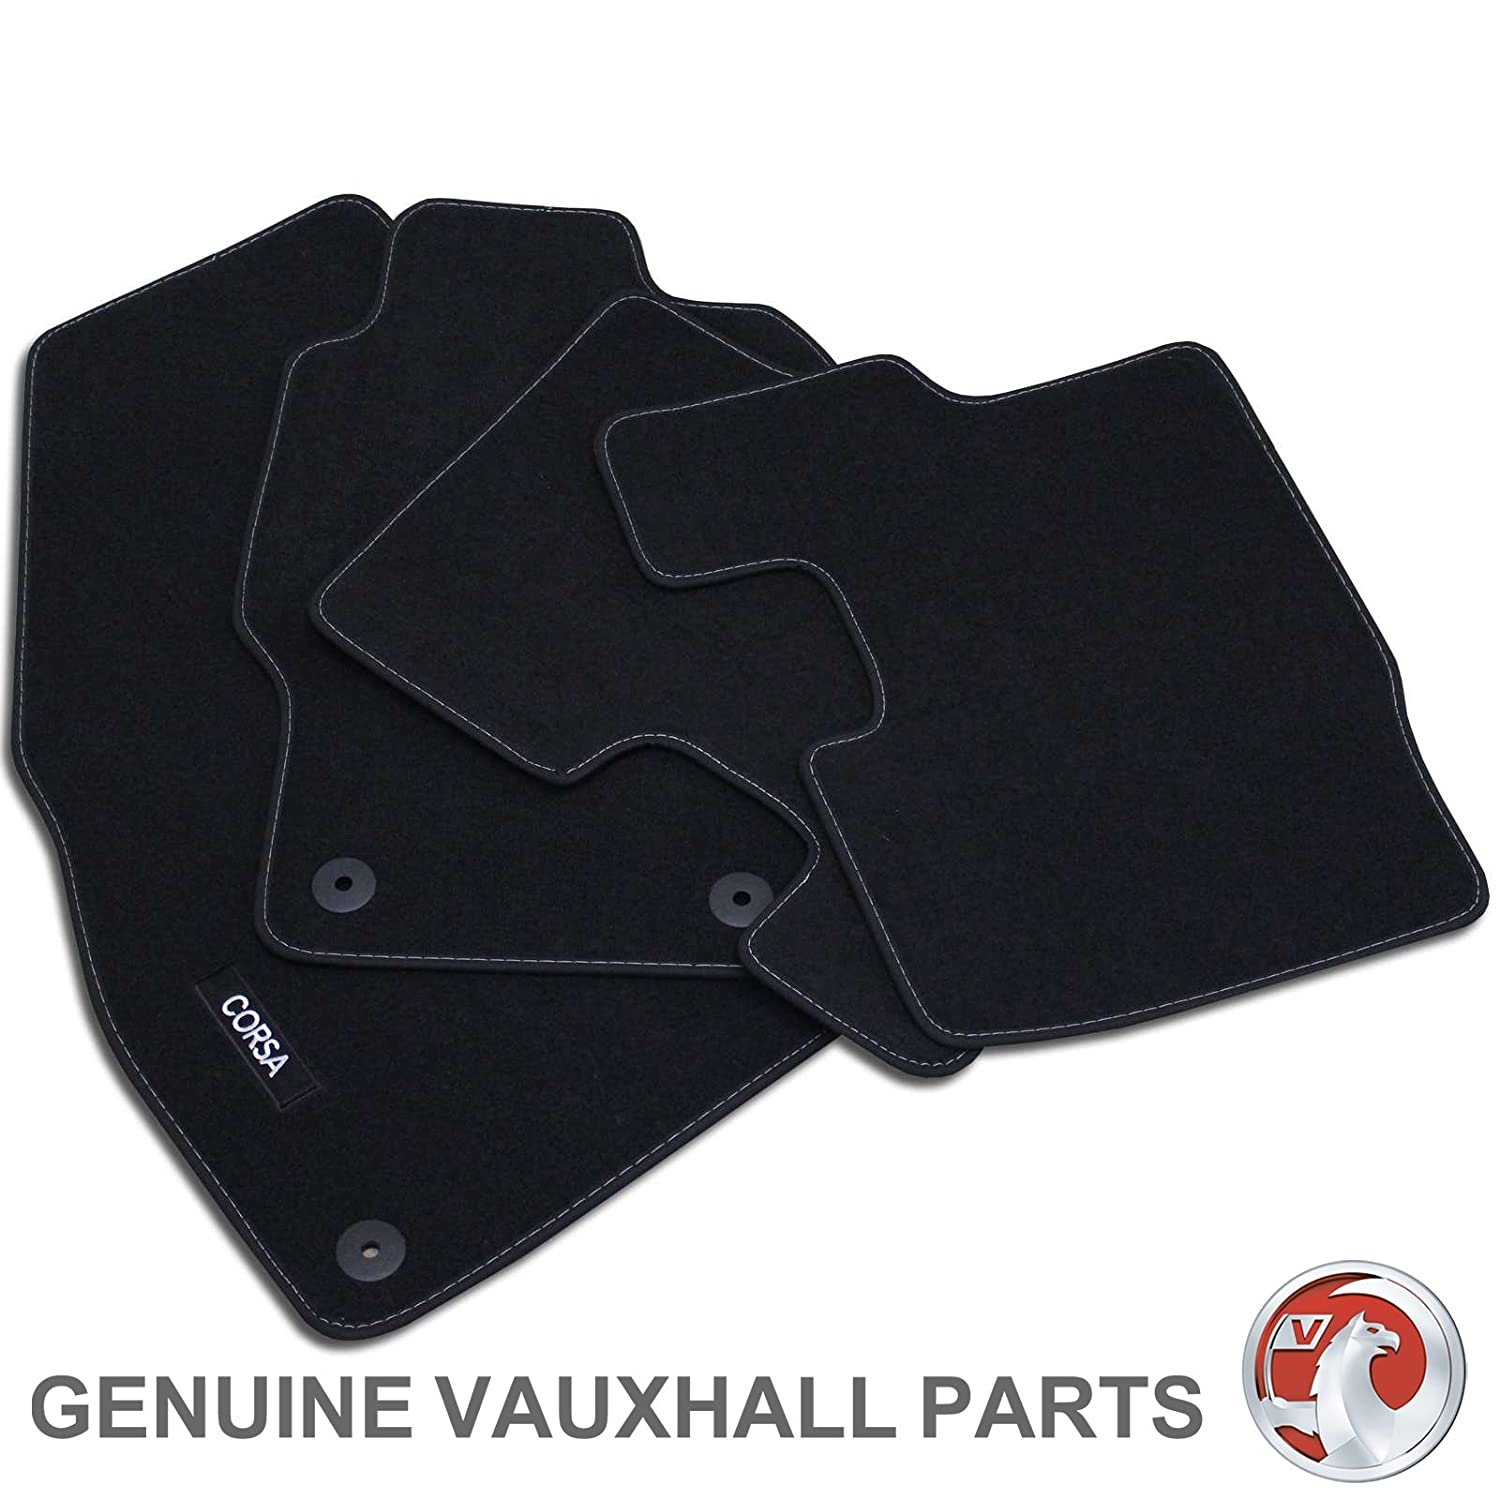 Deluxe Quality Car Mats for Vauxhall Antara 2006 Onwards ** Black **